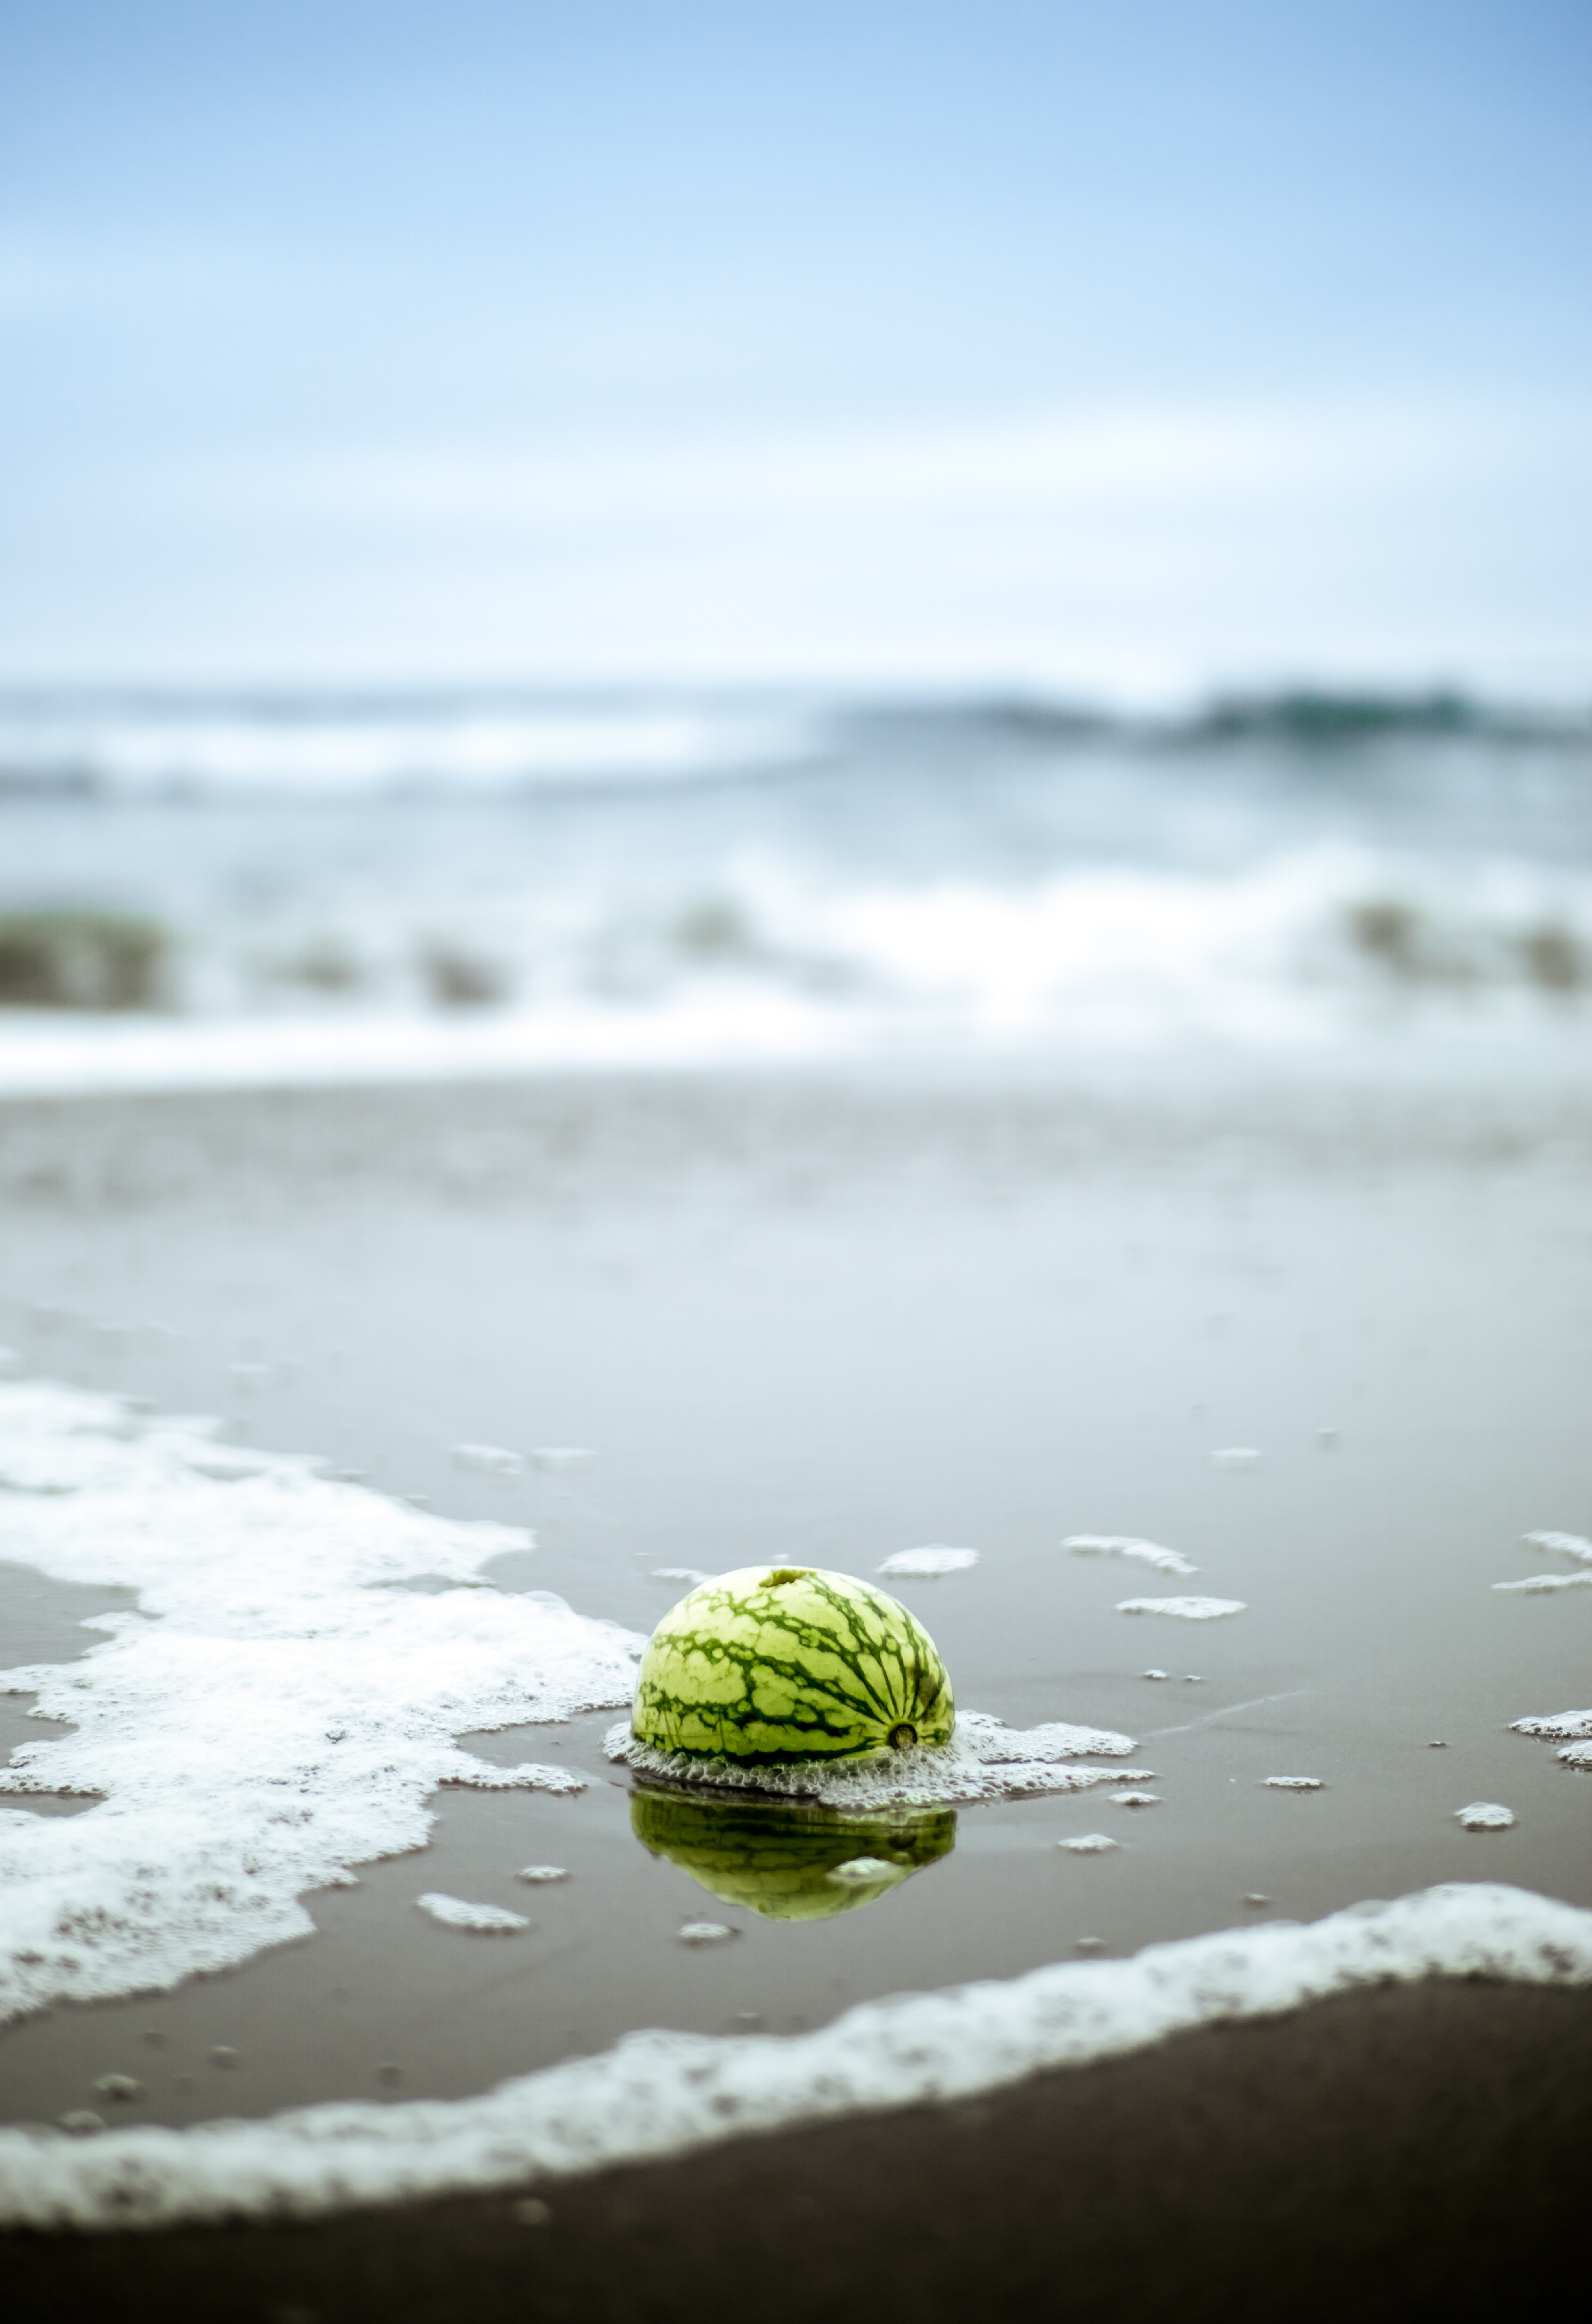 shallow focus photography of watermelon on body of water